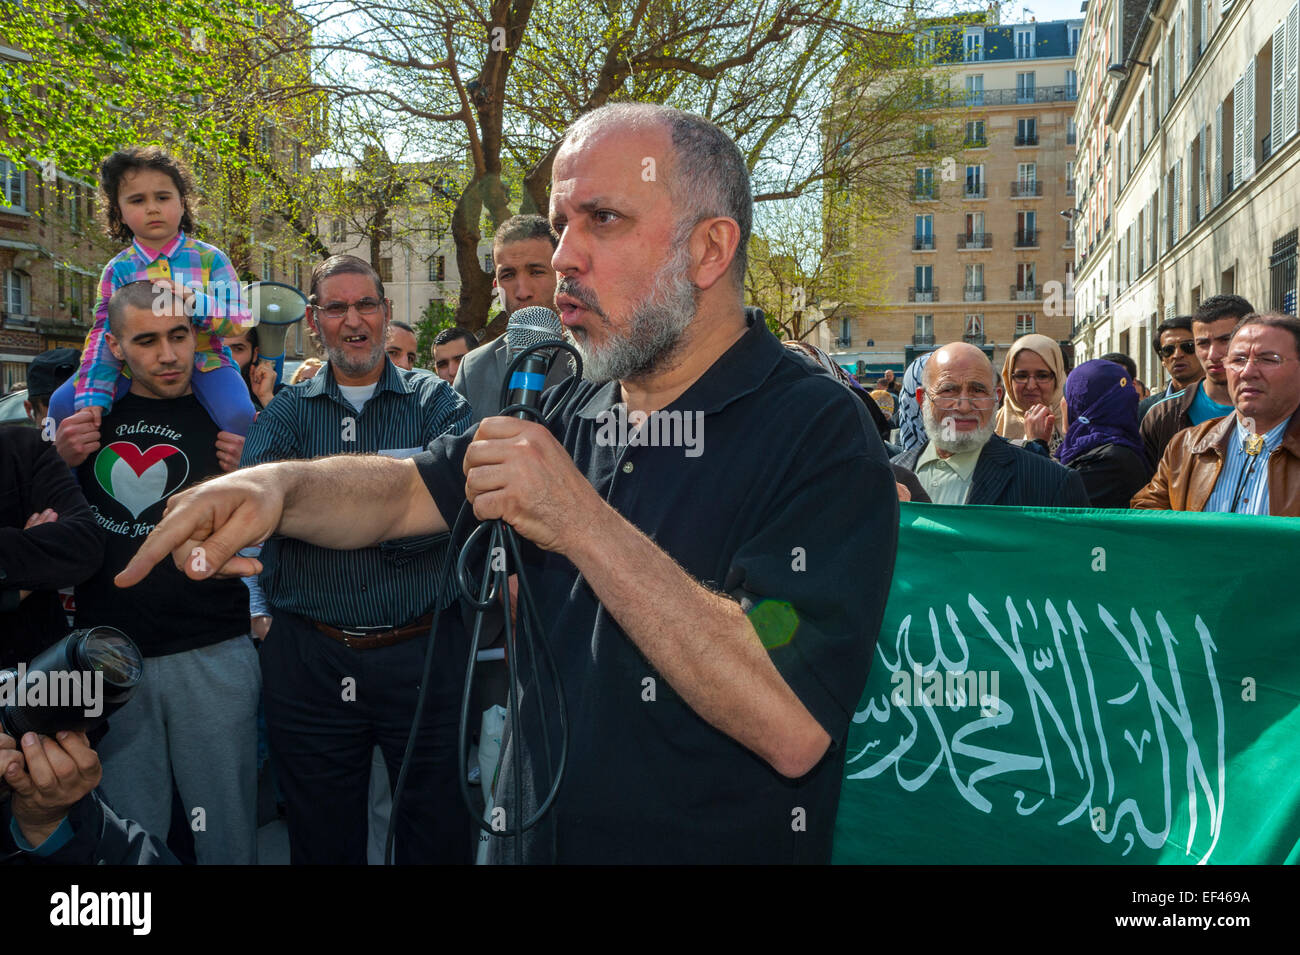 Paris, France, French Arab Muslims Demonstrating against Islamophobia, Racism, Man Making Speech to Crowd - Stock Image